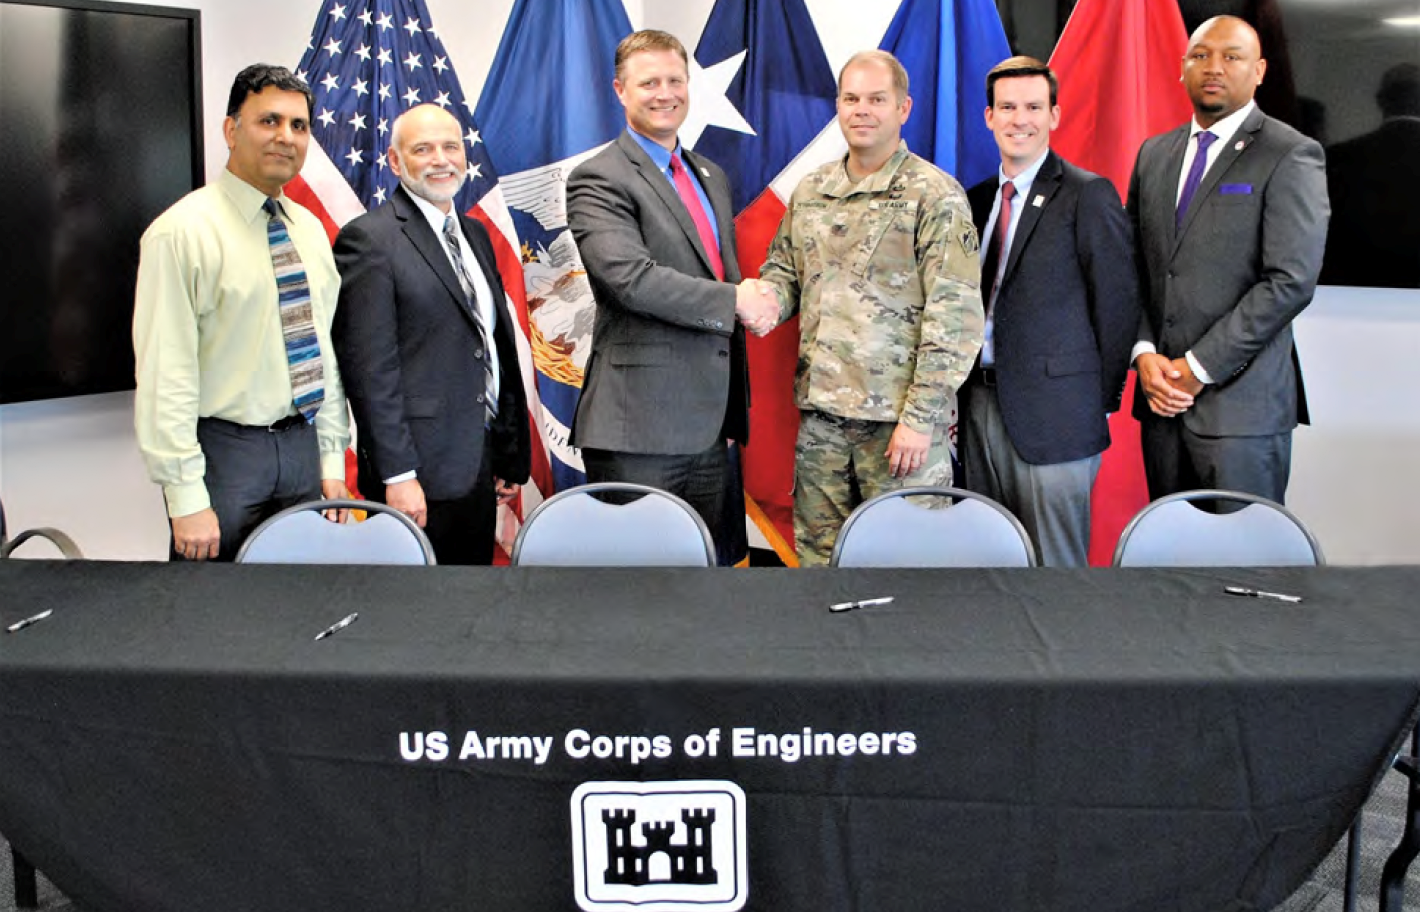 HARRIS COUNTY FLOOD CONTROL DISTRICT AND U.S. ARMY CORPS OF ENGINEERS SIGN AGREEMENT FOR CLEAR CREEK FEDERAL FLOOD RISK MANAGEMENT PROJECT